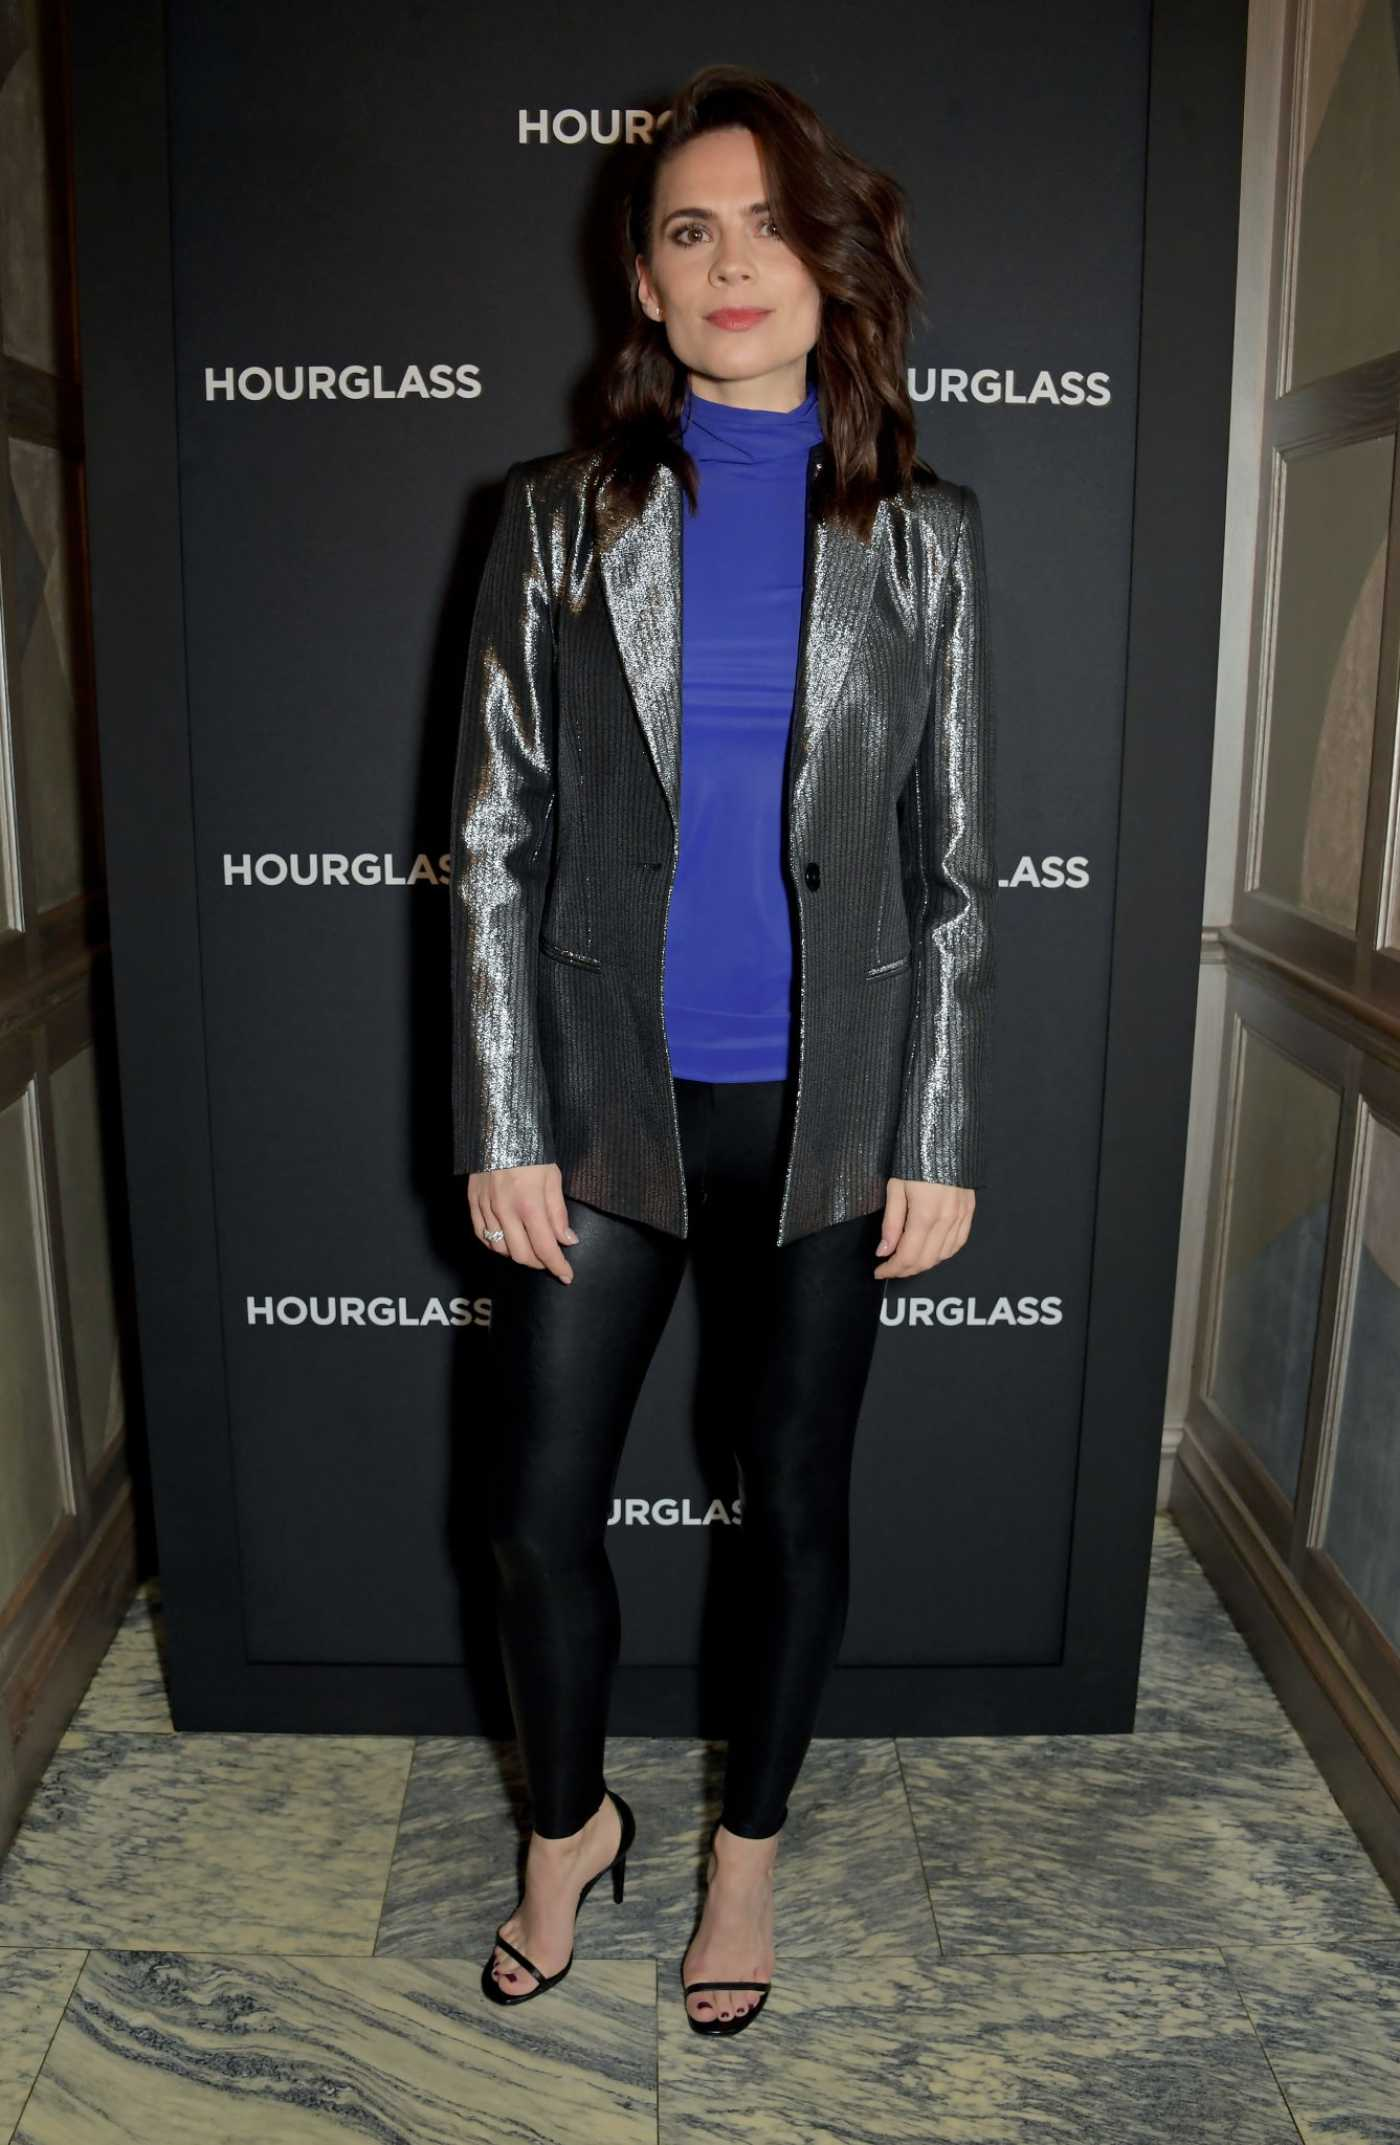 Hayley Atwell Attends the Hourglass Vanish Airbrush Concealer Launch Event in London 01/22/2020